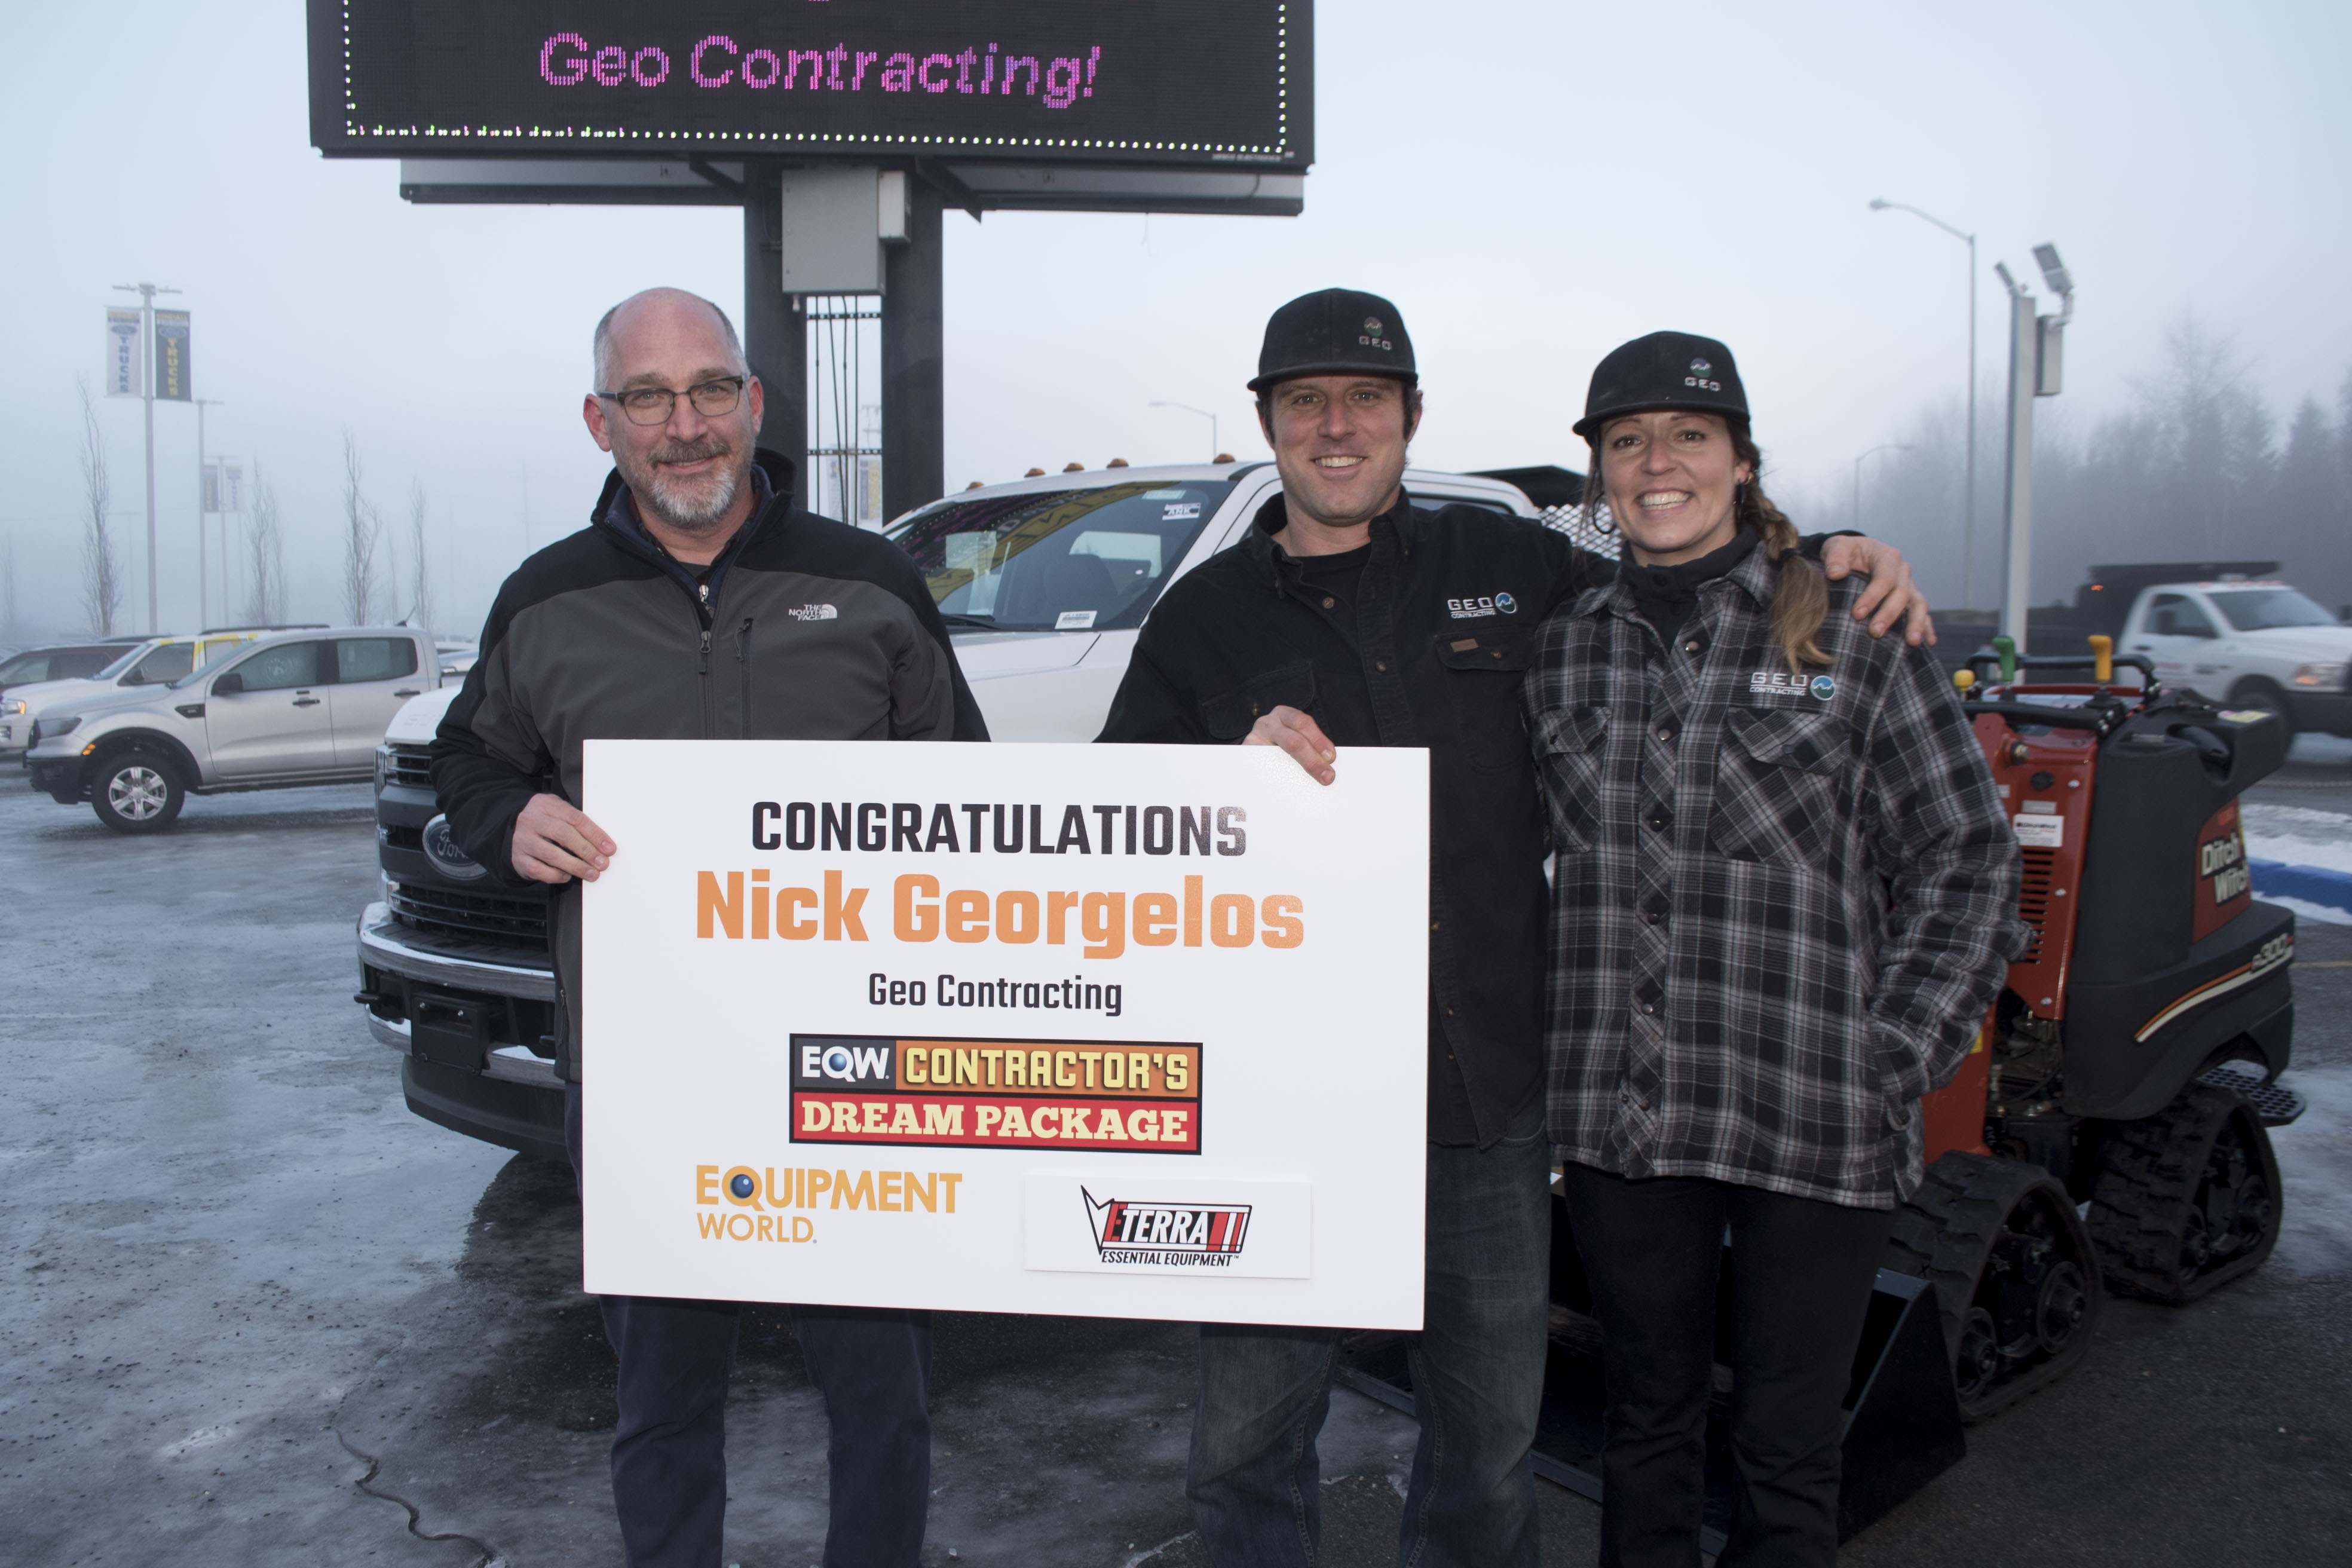 Contractor's Dream Package Winner Nick Georgelos, middle, and his wife Lauren